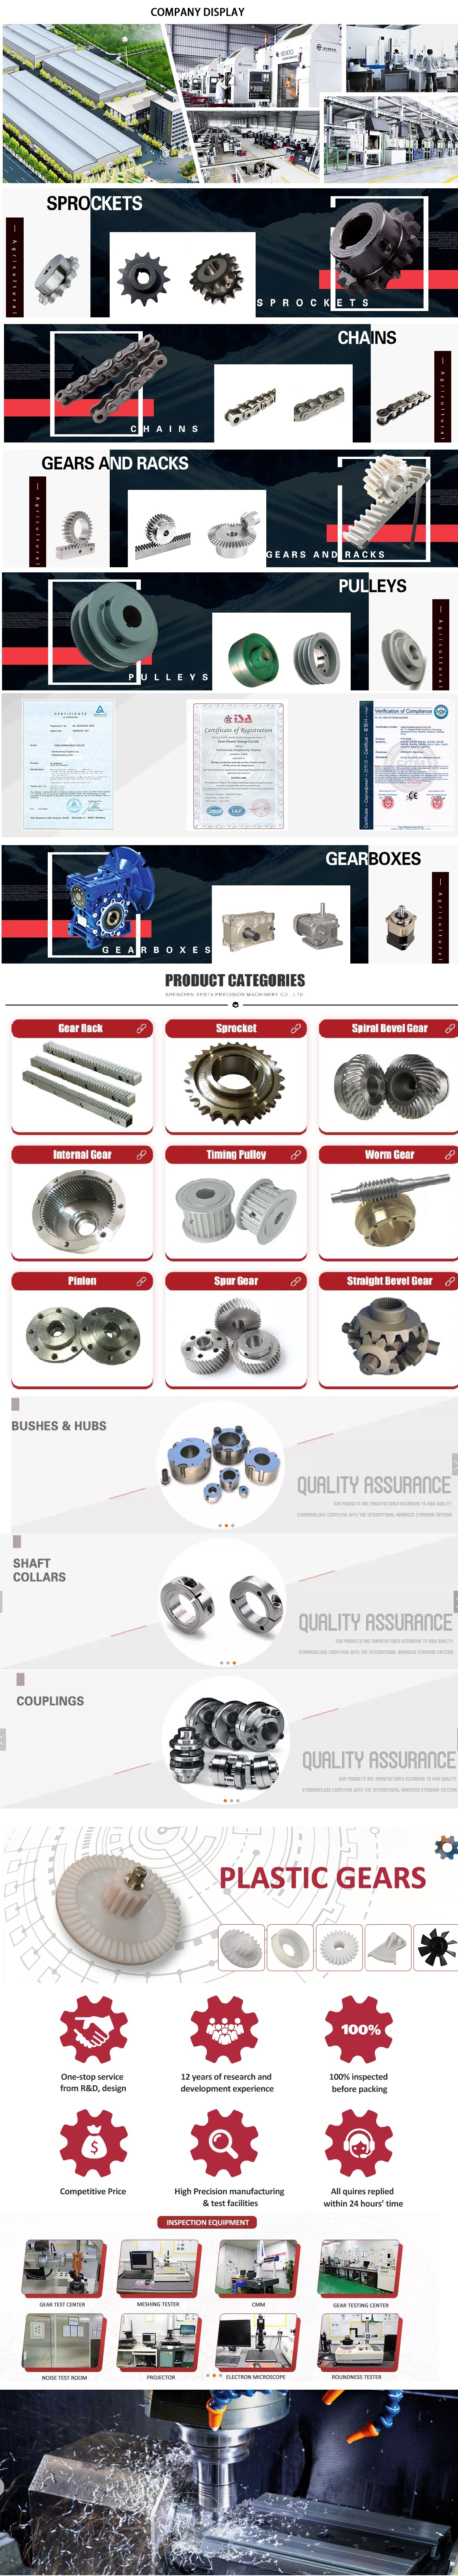 Best  made in China - replacement parts - agricultural gearbox manufacturer in China High   agricultural gearbox   Mosul Iraq   Quality 504 50HP 60HP 4X4 Farm Agricola Tractor Cheap Price with ce certificate top quality low price suitable for Tractor, Agricultural machines, right angle pto shaft drive